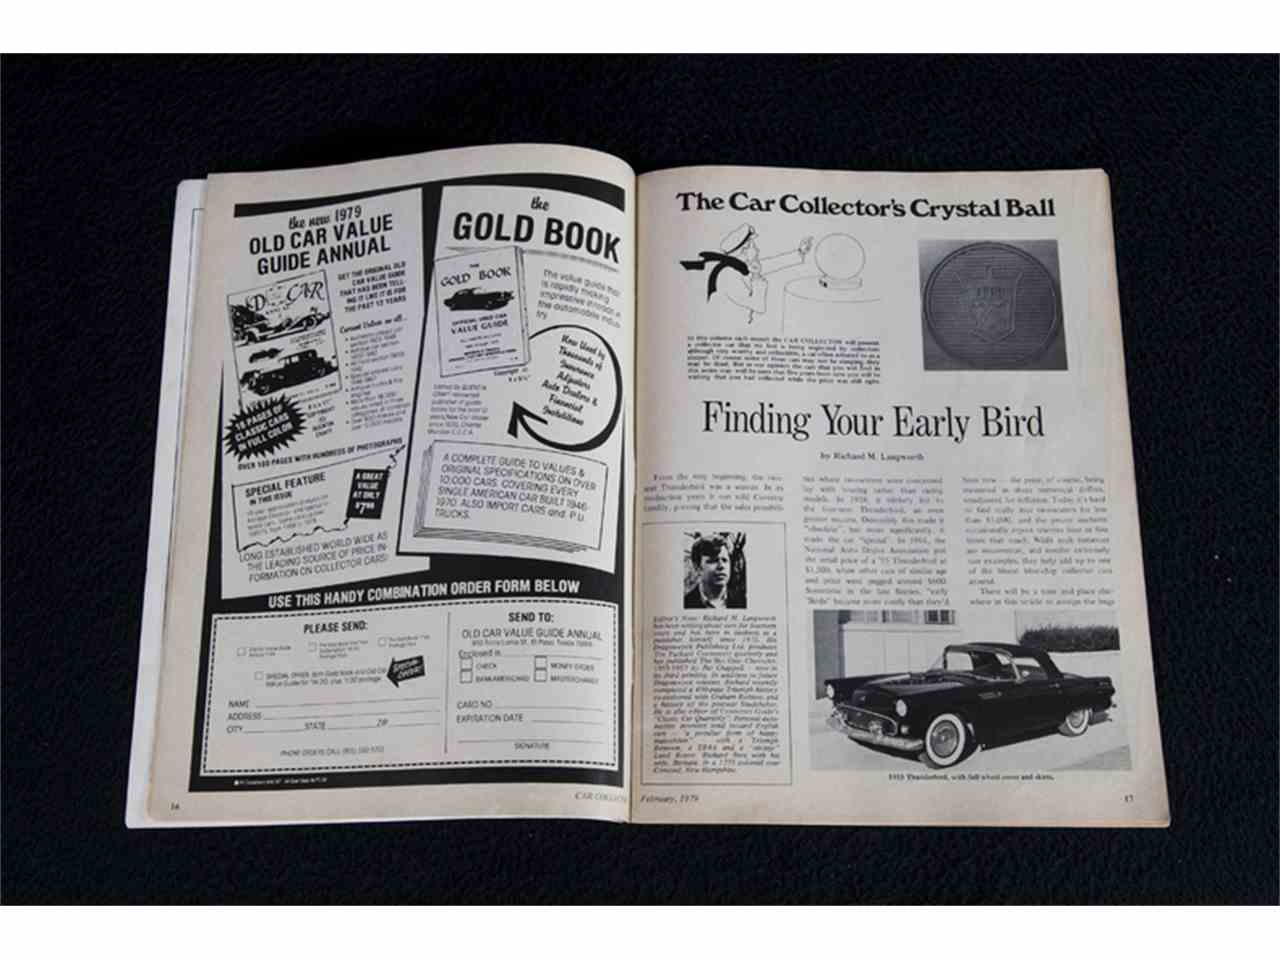 Great Old Car Value Guide Images - Classic Cars Ideas - boiq.info